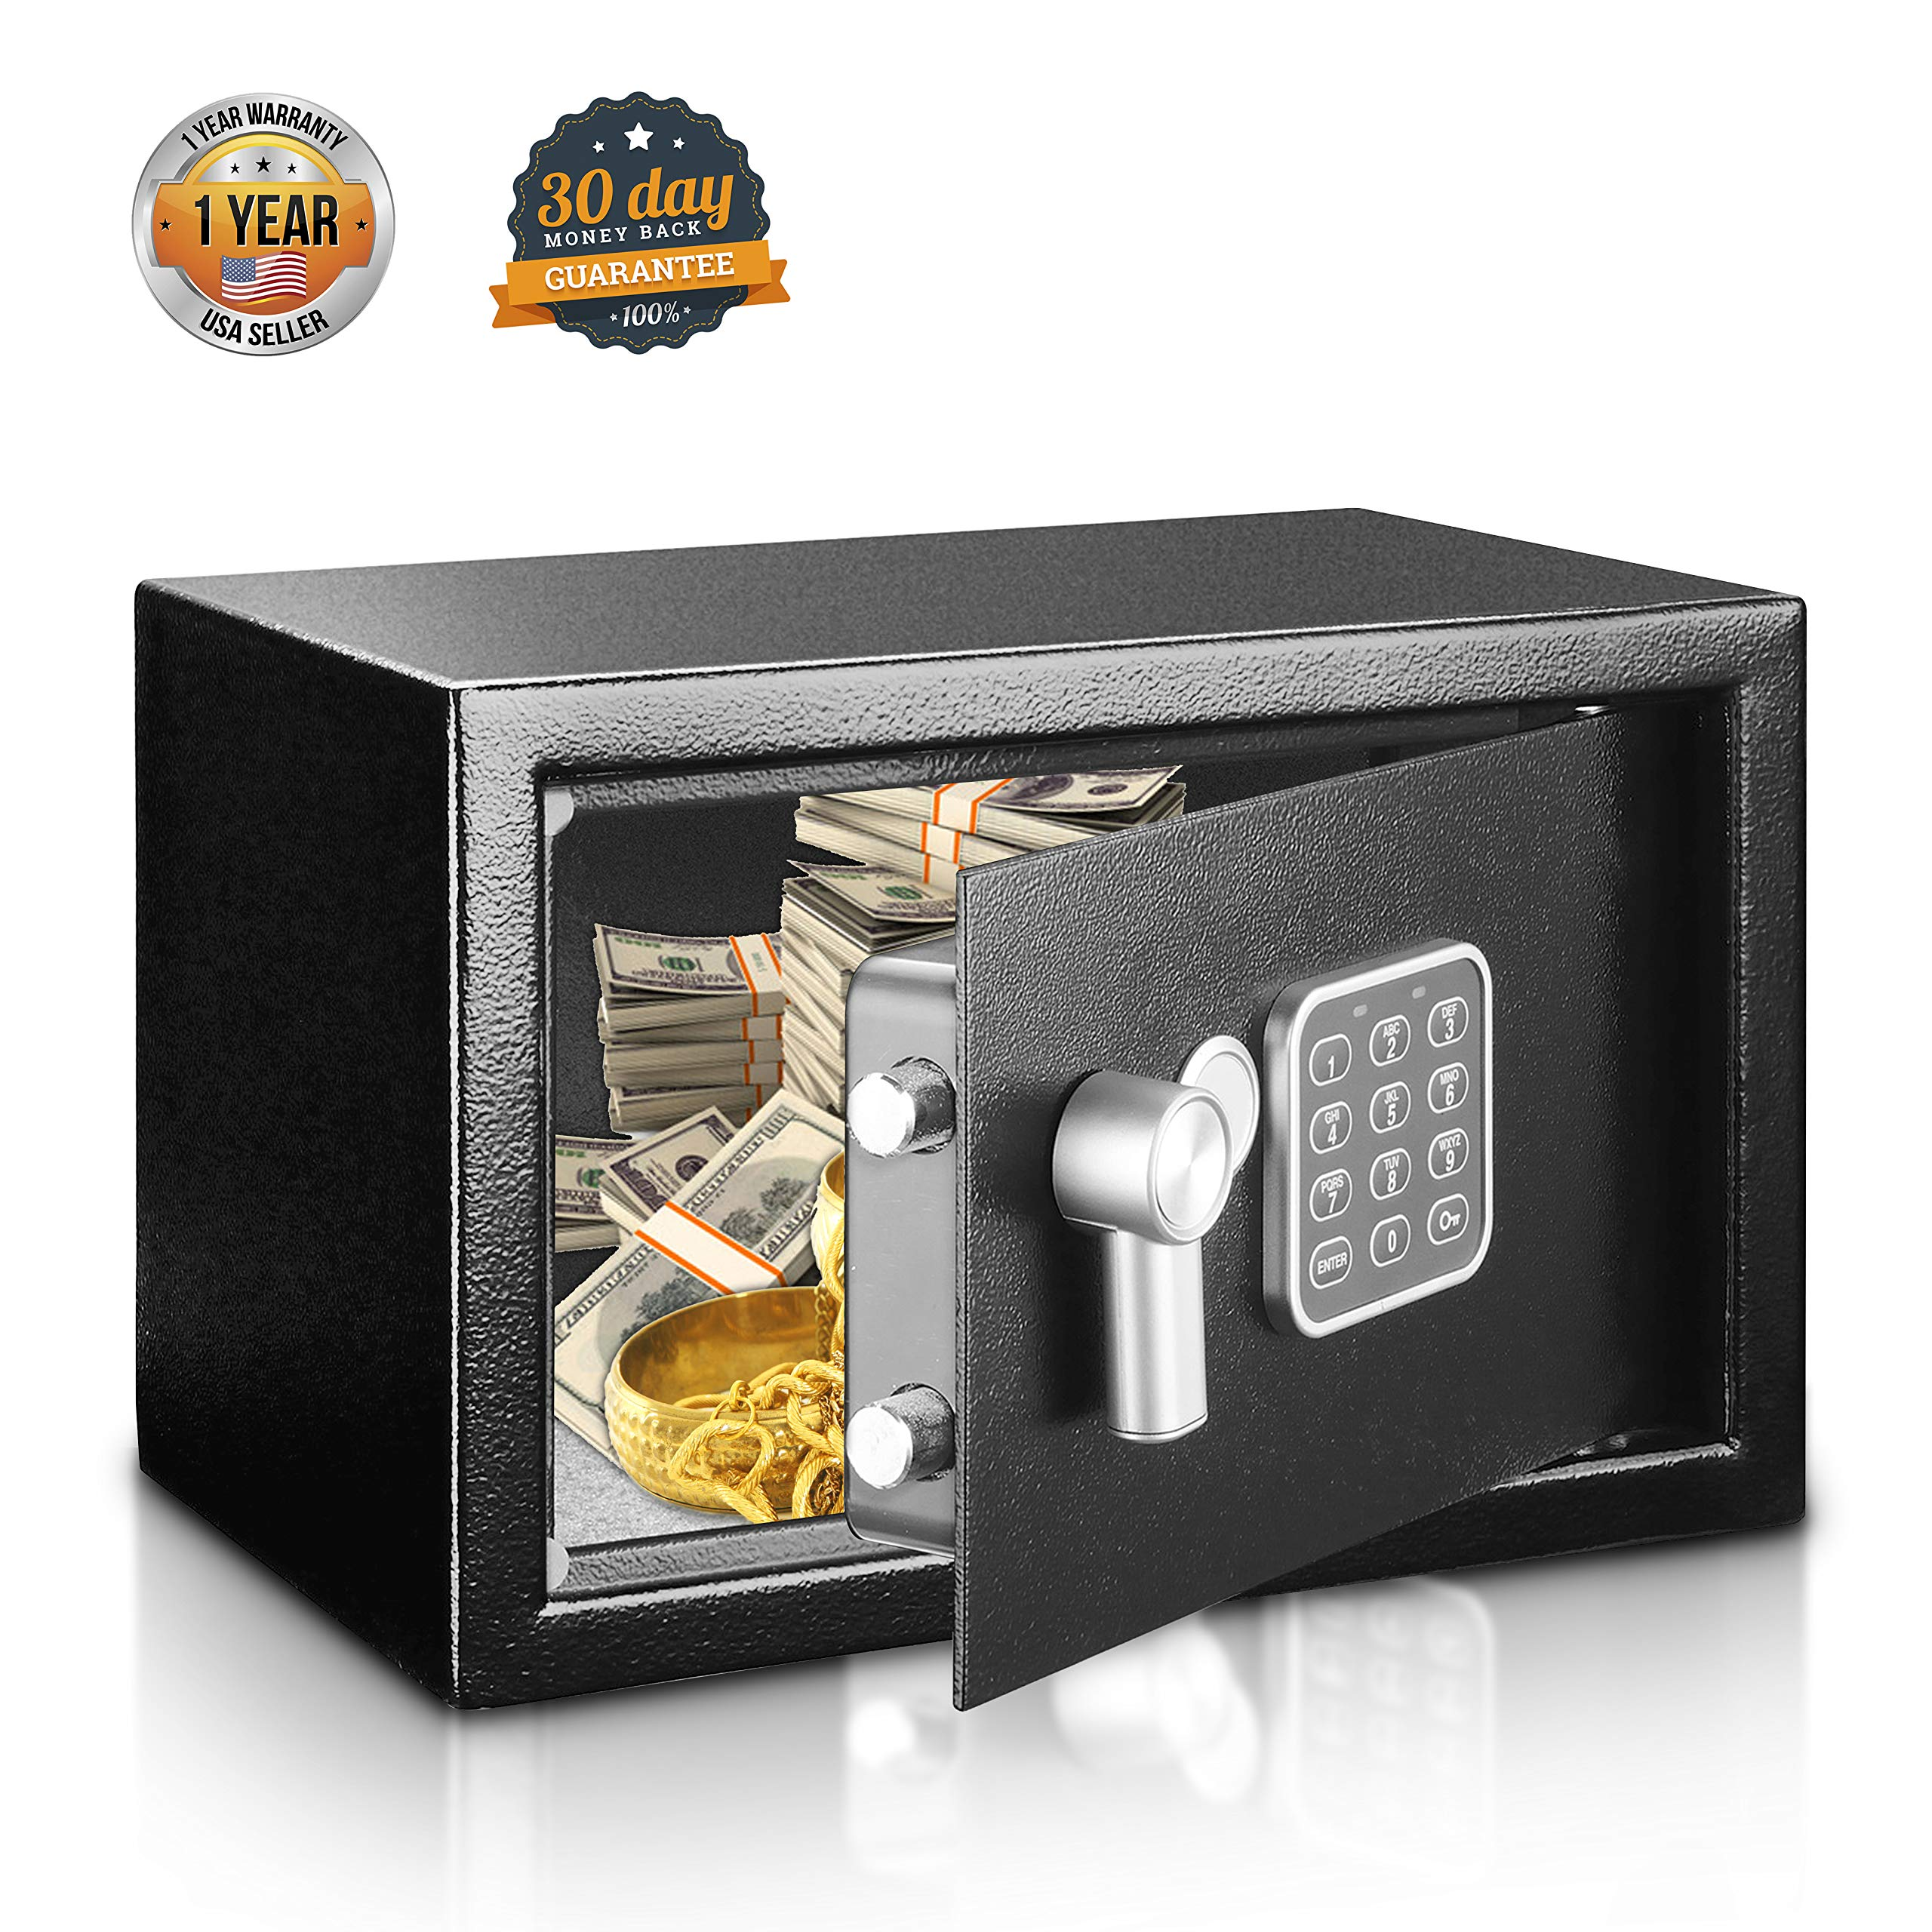 SereneLife Safe Box, Safes and Lock Boxes, Money Box, Safety Boxes for Home, Digital Safe Box, Steel Alloy Drop Safe, Includes Keys by SereneLife